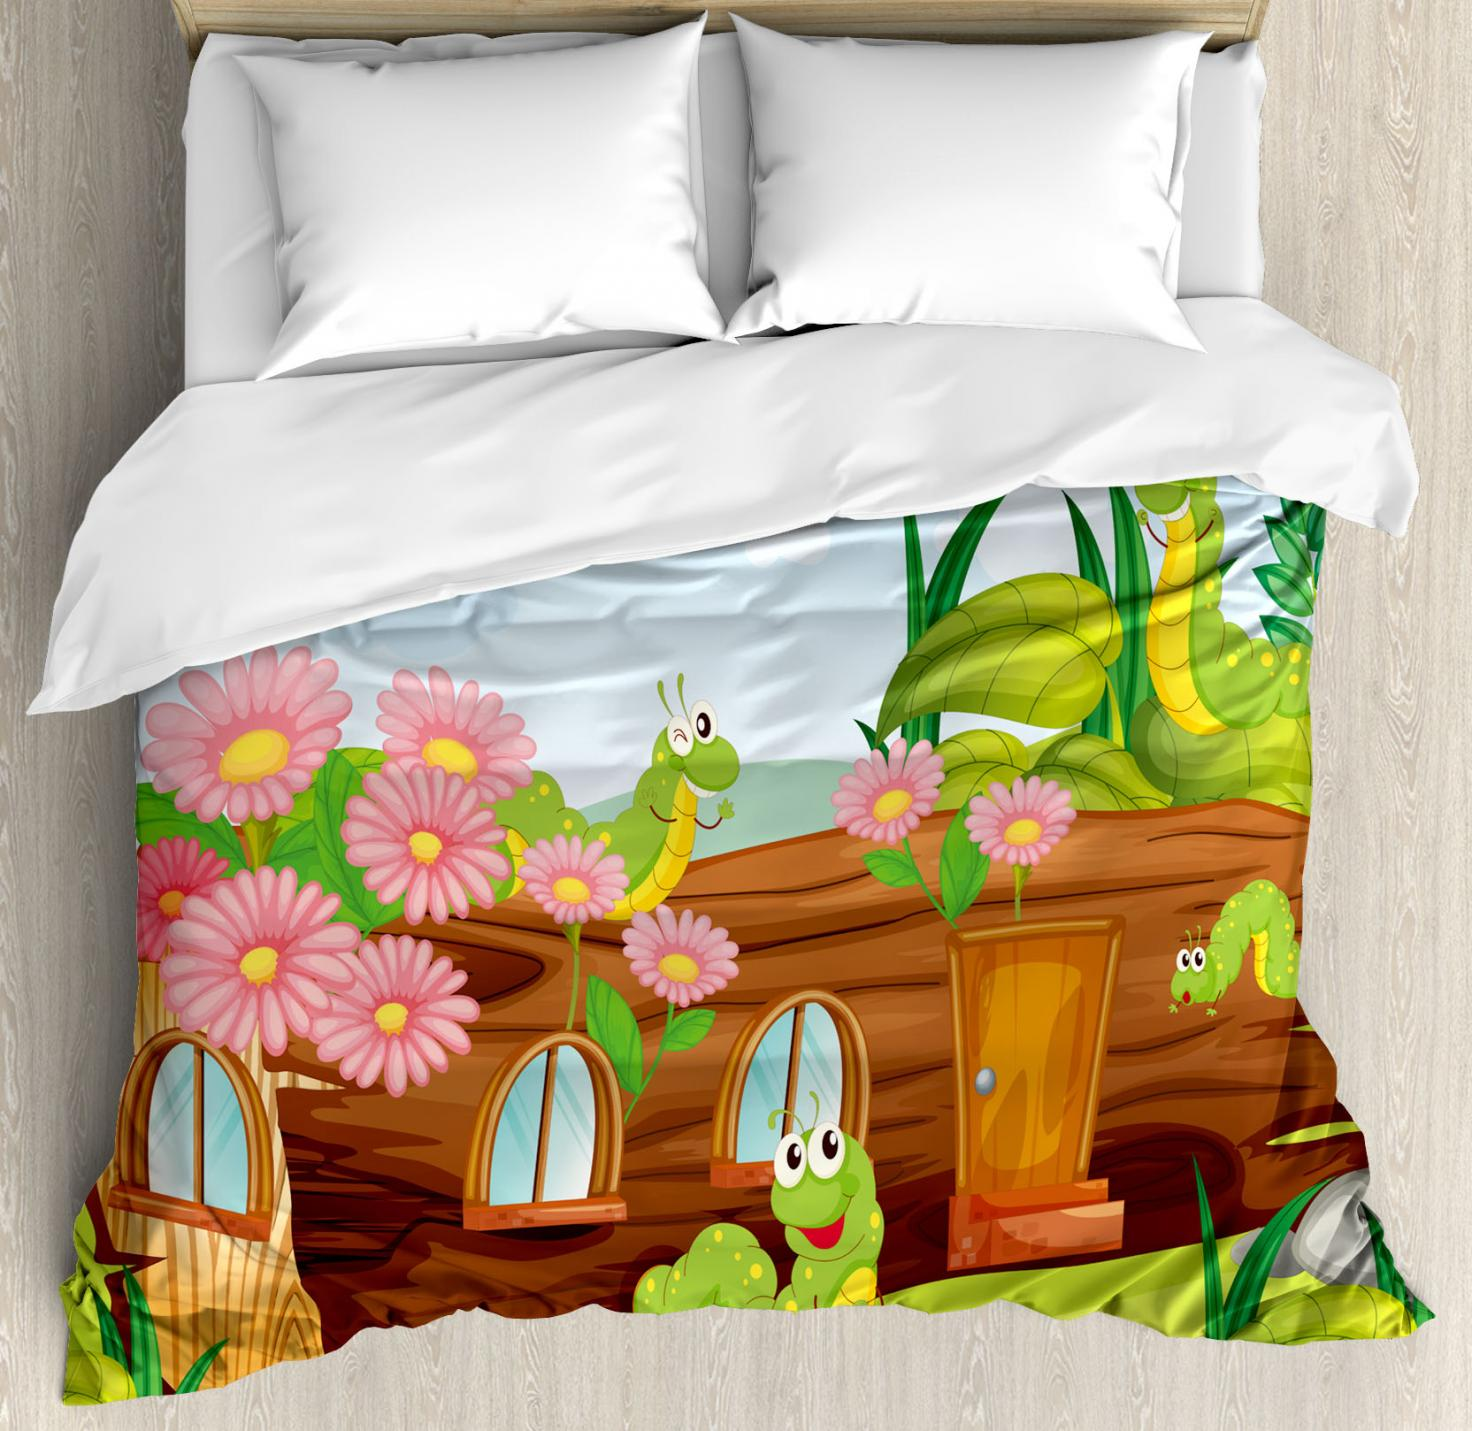 Kids Duvet Cover Set, Cute Friendly Smiling Worms in Wooden Tree House Animal Image, Decorative Bedding Set with Pillow Shams, Chocolate Sky Blue Apple Green, by Ambesonne